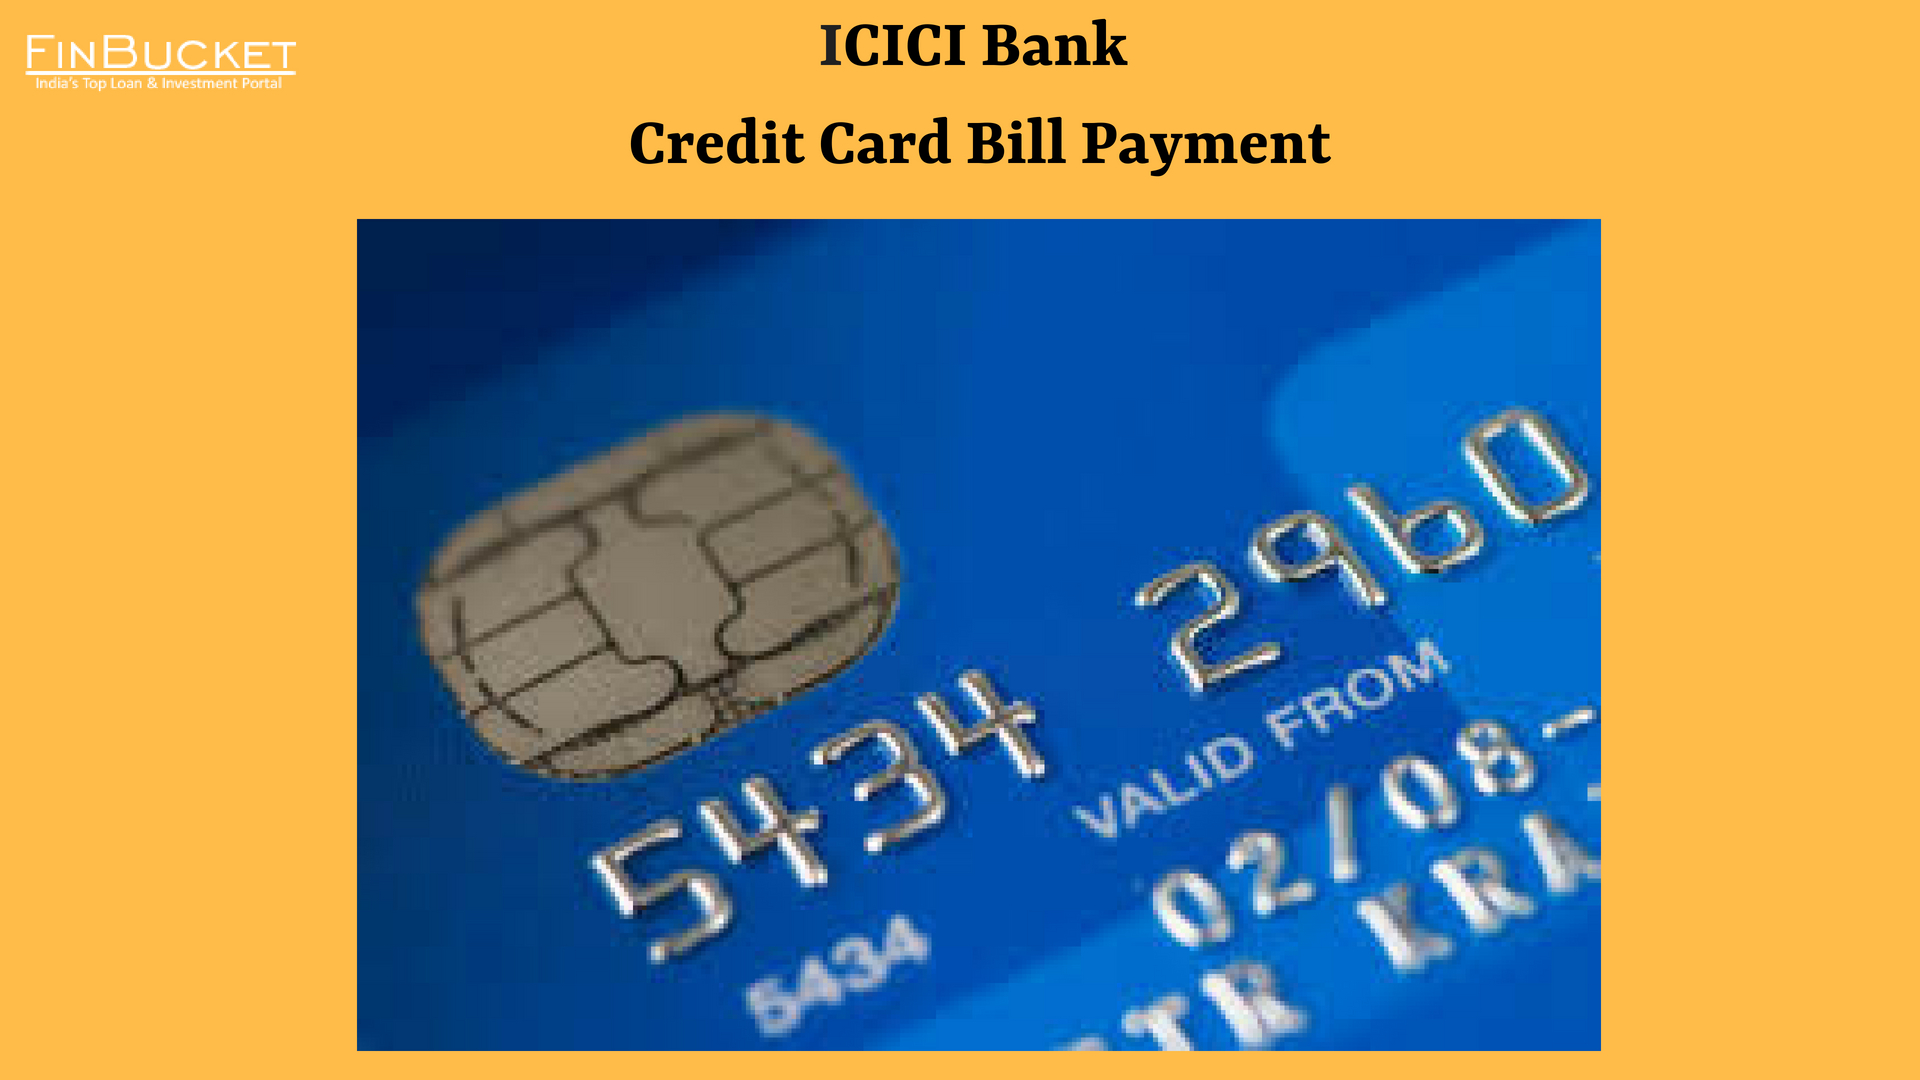 icici personal loan application status tracking